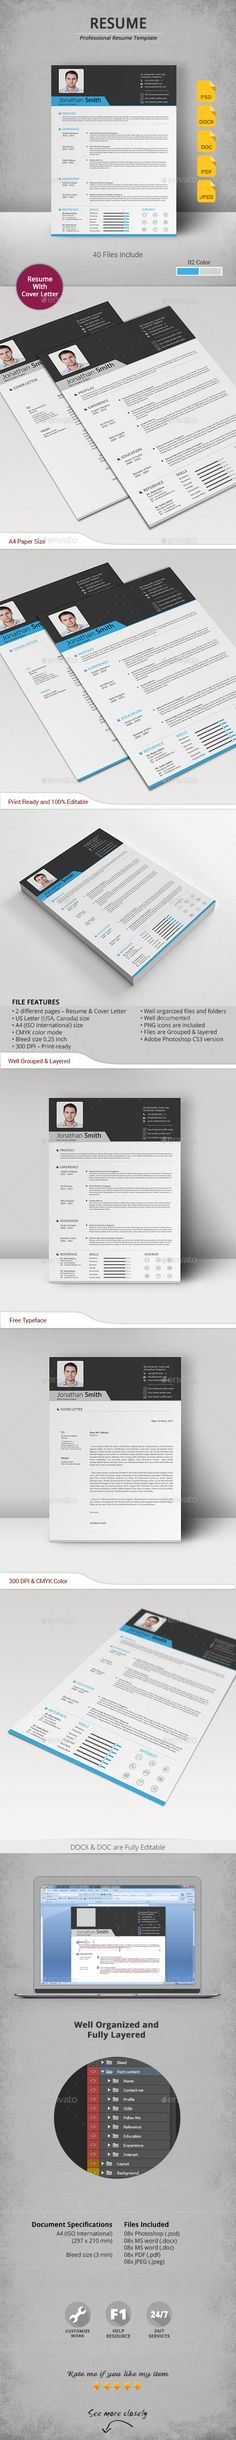 CV Resumes Stationery Download here httpsgraphicrivernetitemcv20086973refu003dalena994